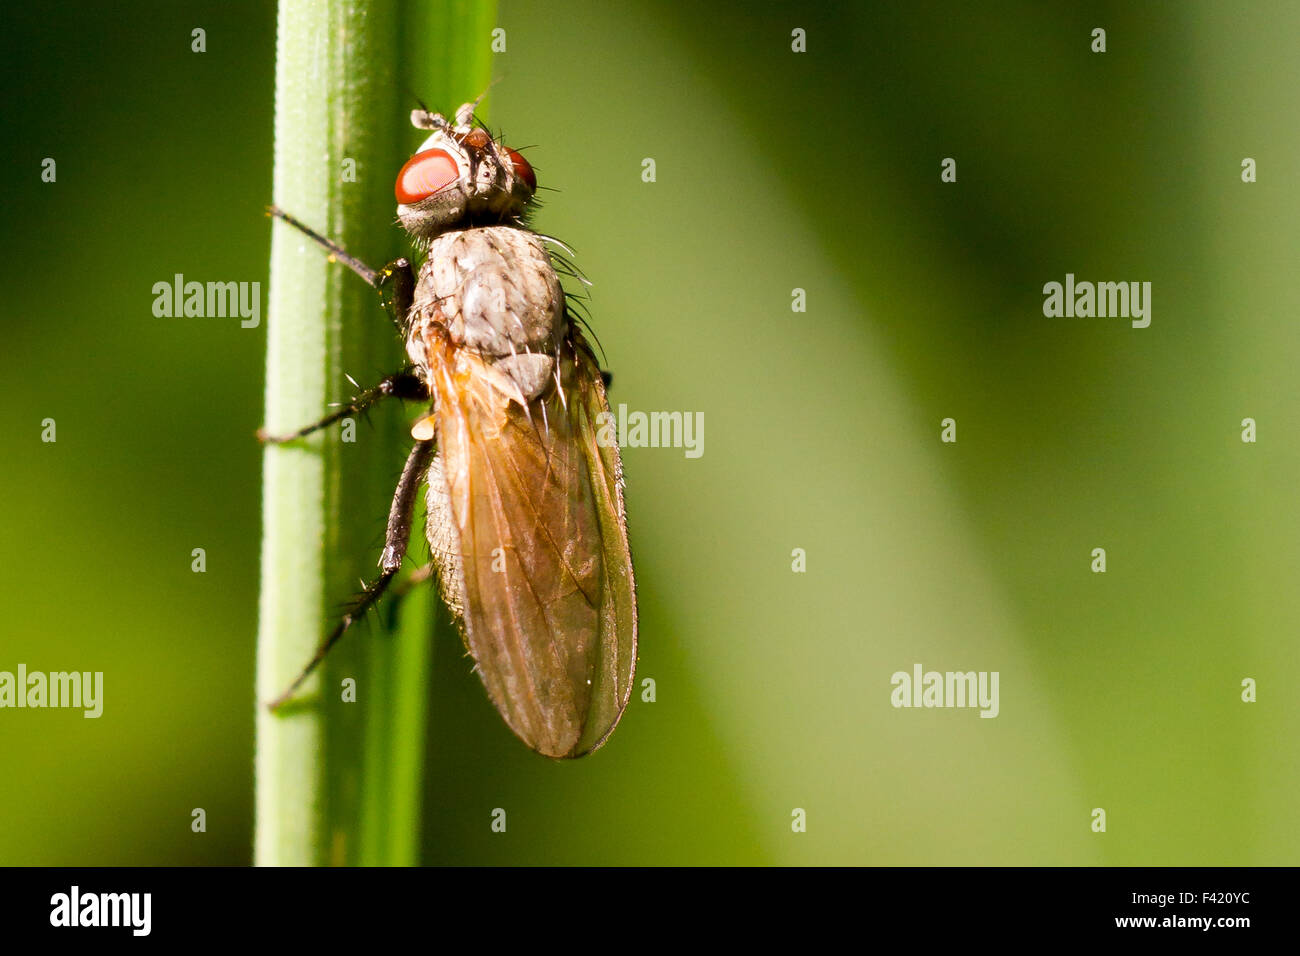 A fly on a blade of grass. - Stock Image